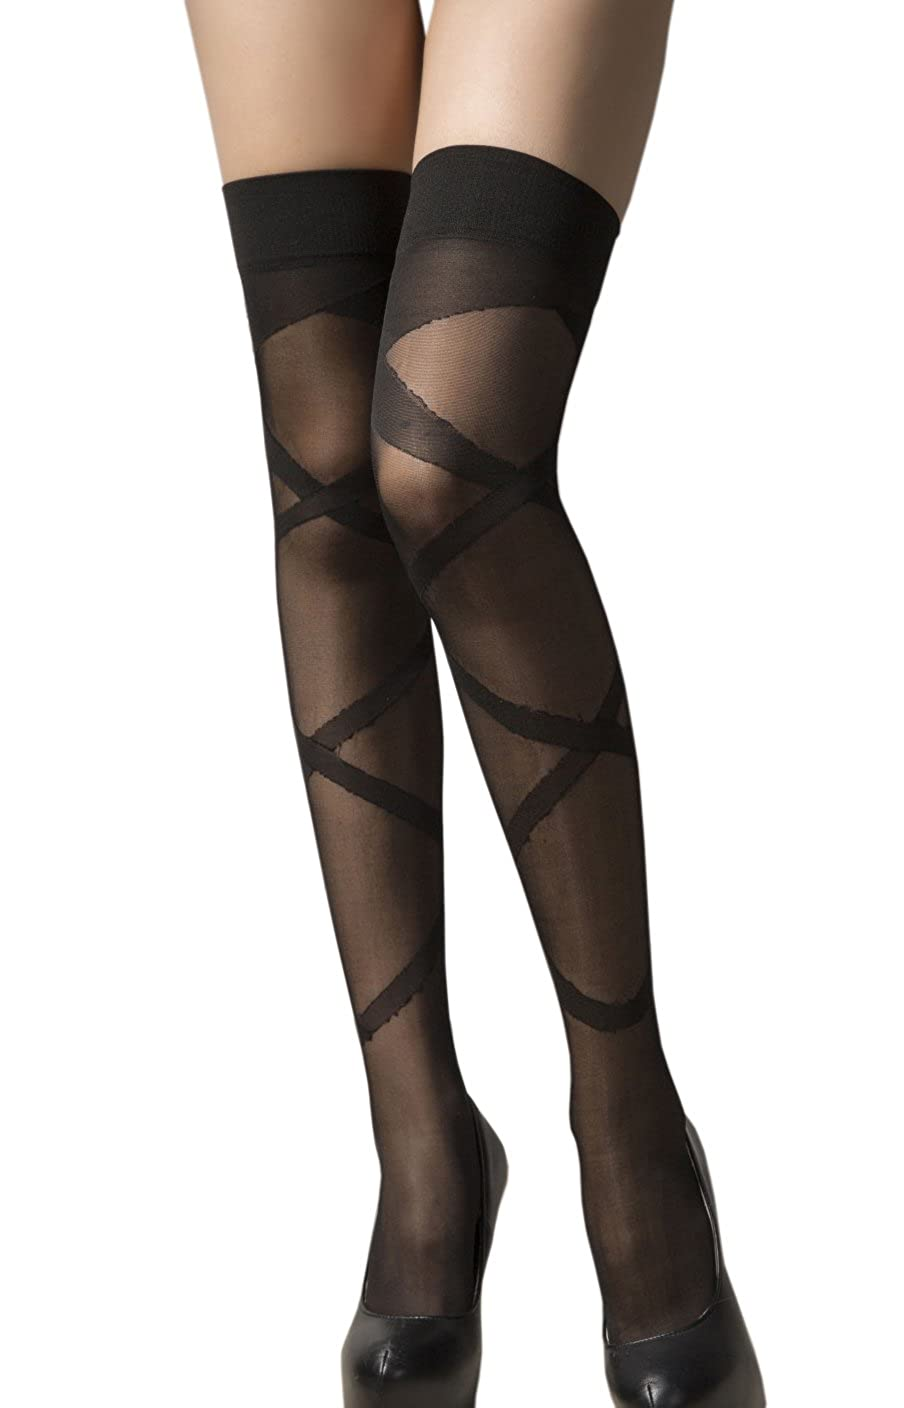 DA2S Stocking Tights Black Garter Belt Stocking Set Women